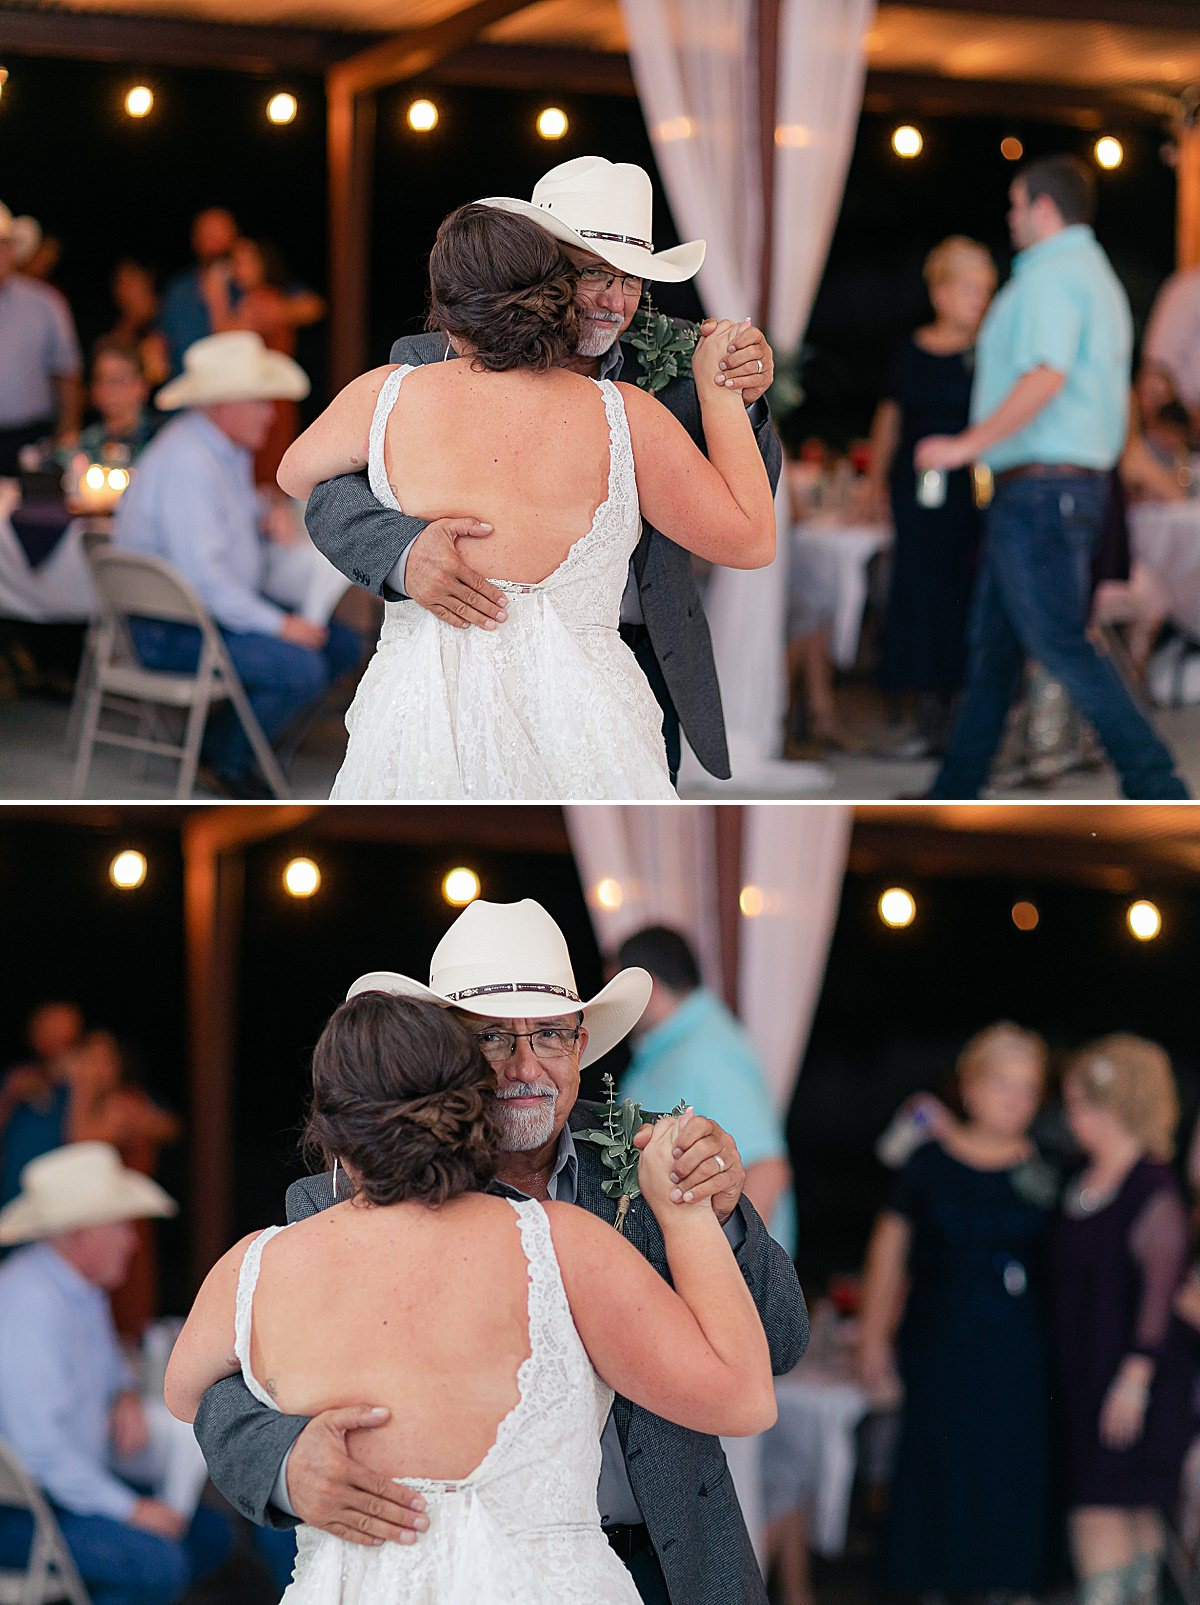 Rustic-Texas-Wedding-Hollow-Creek-Ranch-Carly-Barton-Photography_0035.jpg